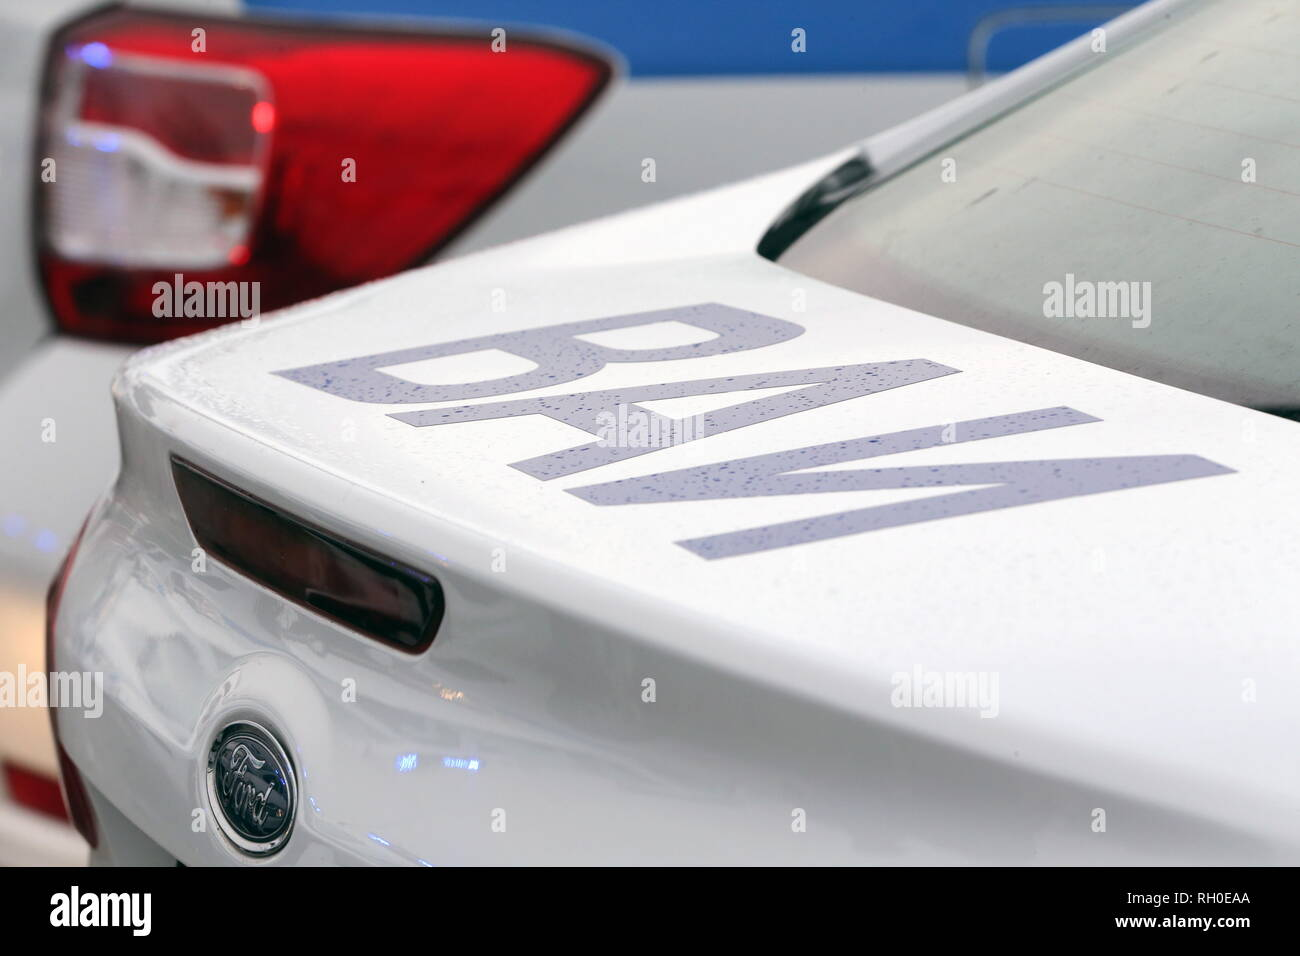 Moscow, Russia. 31st Jan, 2019. MOSCOW, RUSSIA - JANUARY 31, 2019: A military police car, one of the 65 new Renault Logan company cars to be given to independent security service units of the Russian National Guard, on Moscow's Poklonnaya Hill. Vladimir Gerdo/TASS Credit: ITAR-TASS News Agency/Alamy Live News - Stock Image